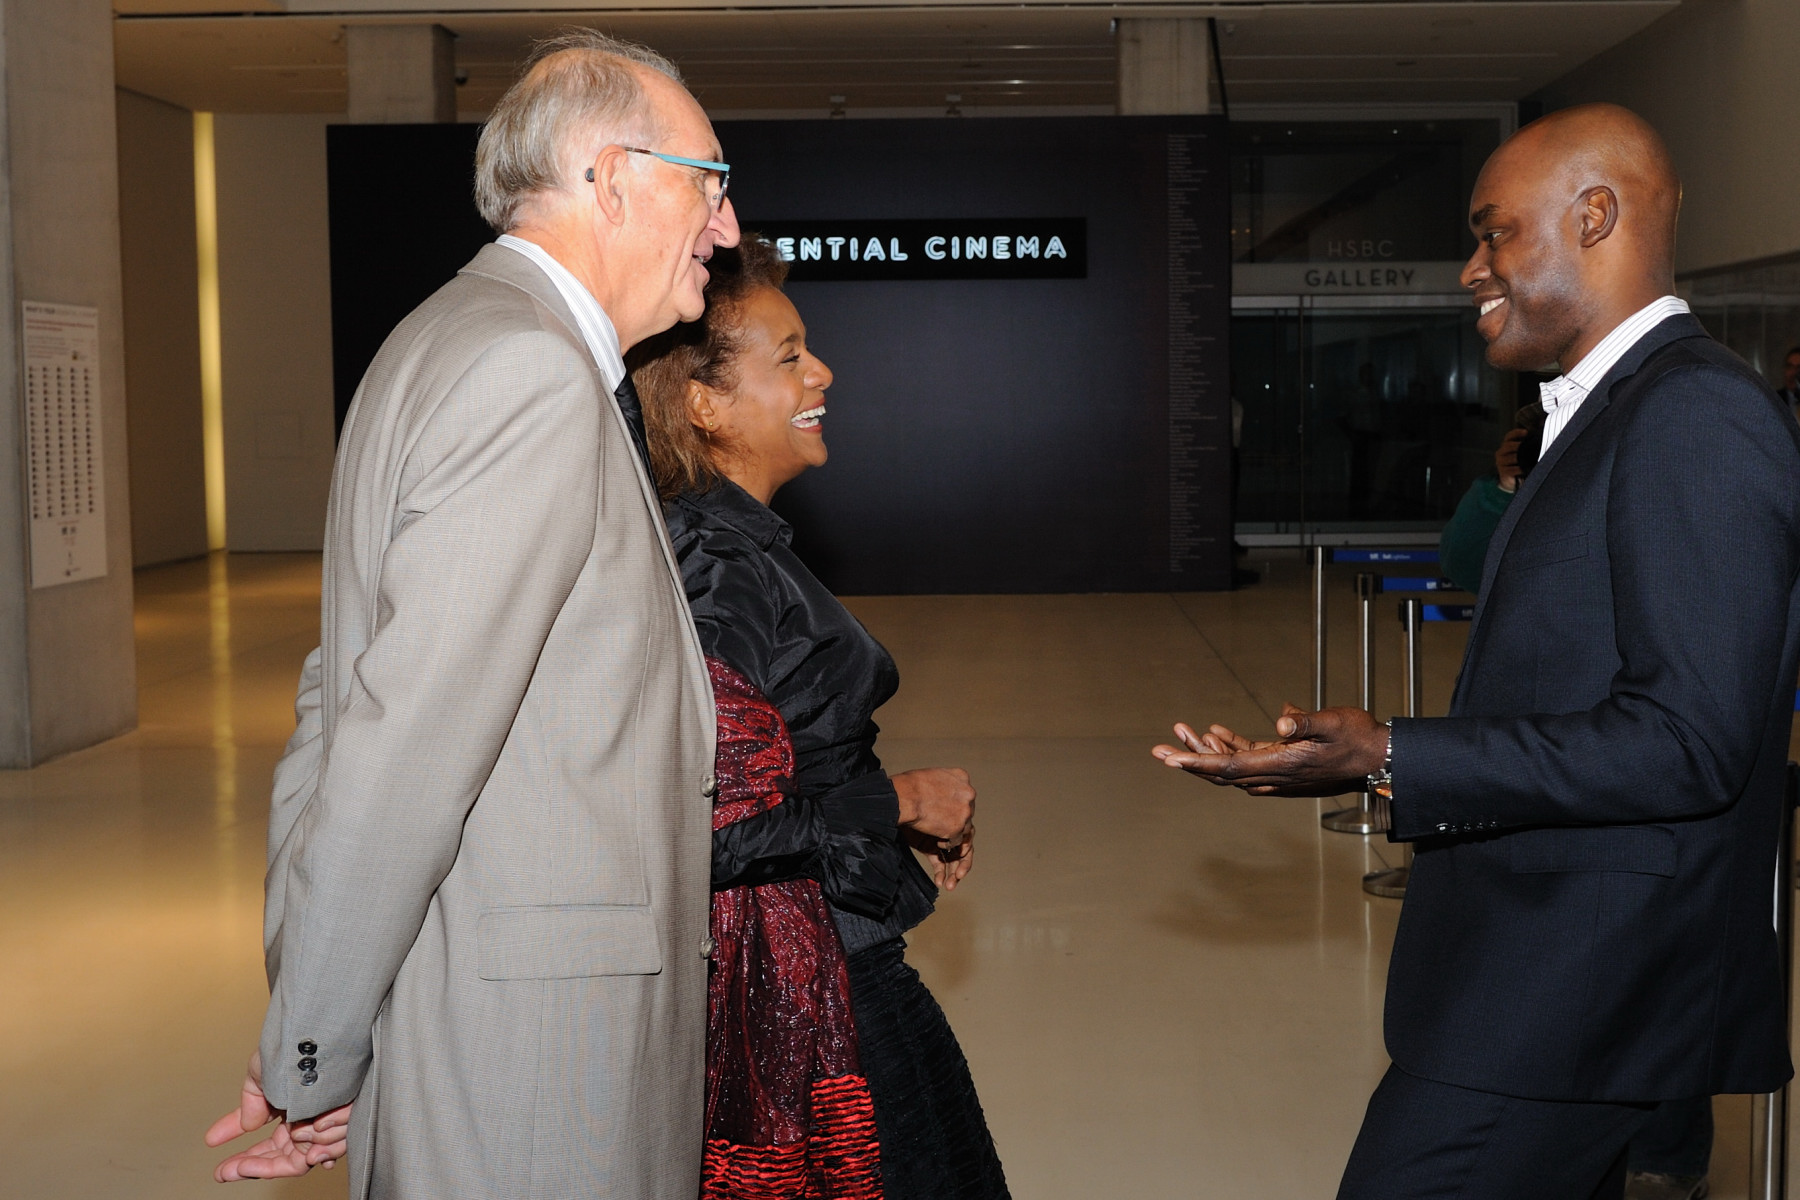 In the presence of Mr. Cameron Bailey, co-director of the Toronto International Film Festival, Their Excellencies visited the Toronto International Film Festival (TIFF) Bell Lightbox, the new year-round home of TIFF.